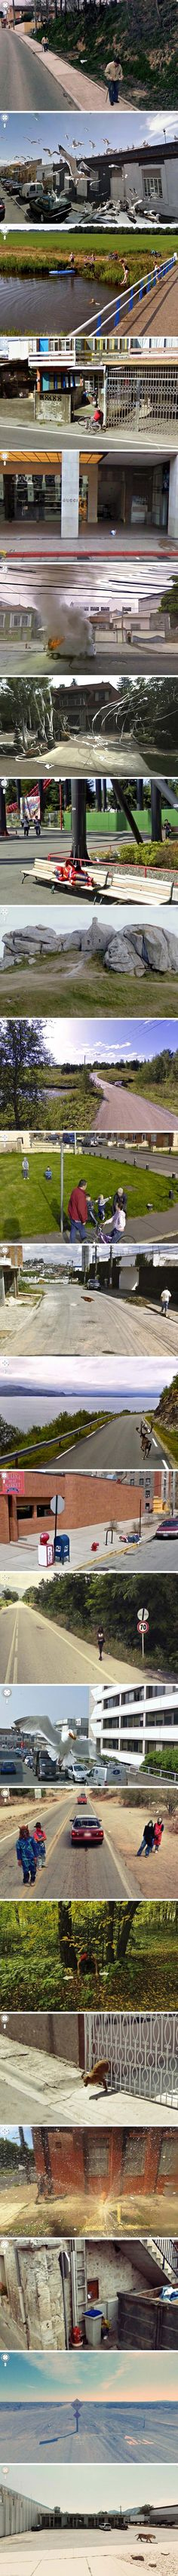 HAHA!  Funny Google Maps pictures.  They're so random!